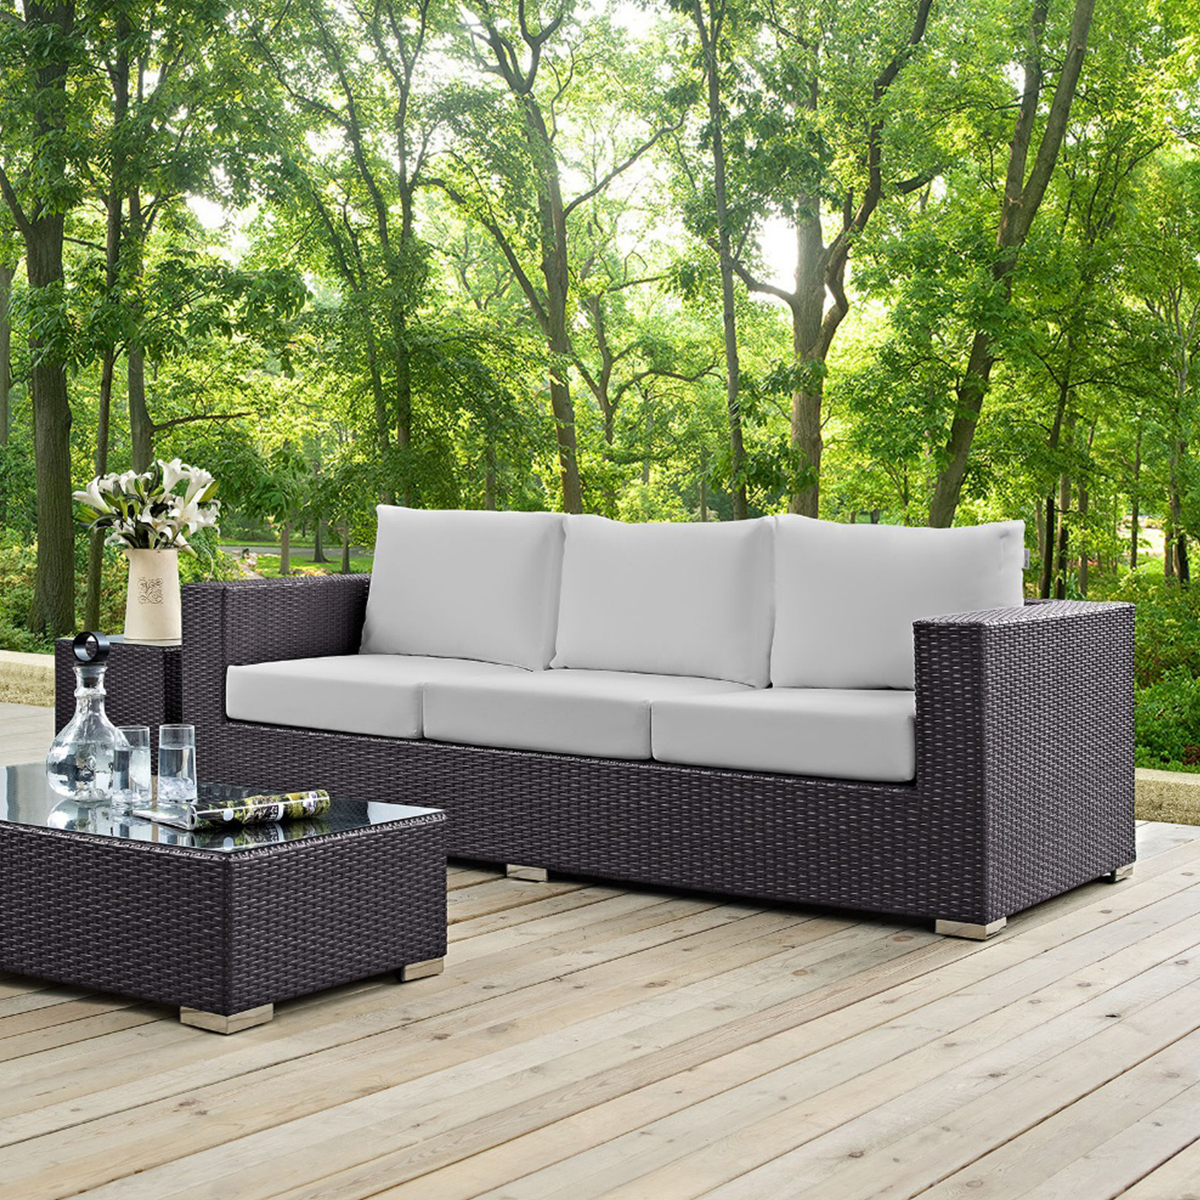 Forever Patio Catalina Sofa with Cushions NC4573S-EX